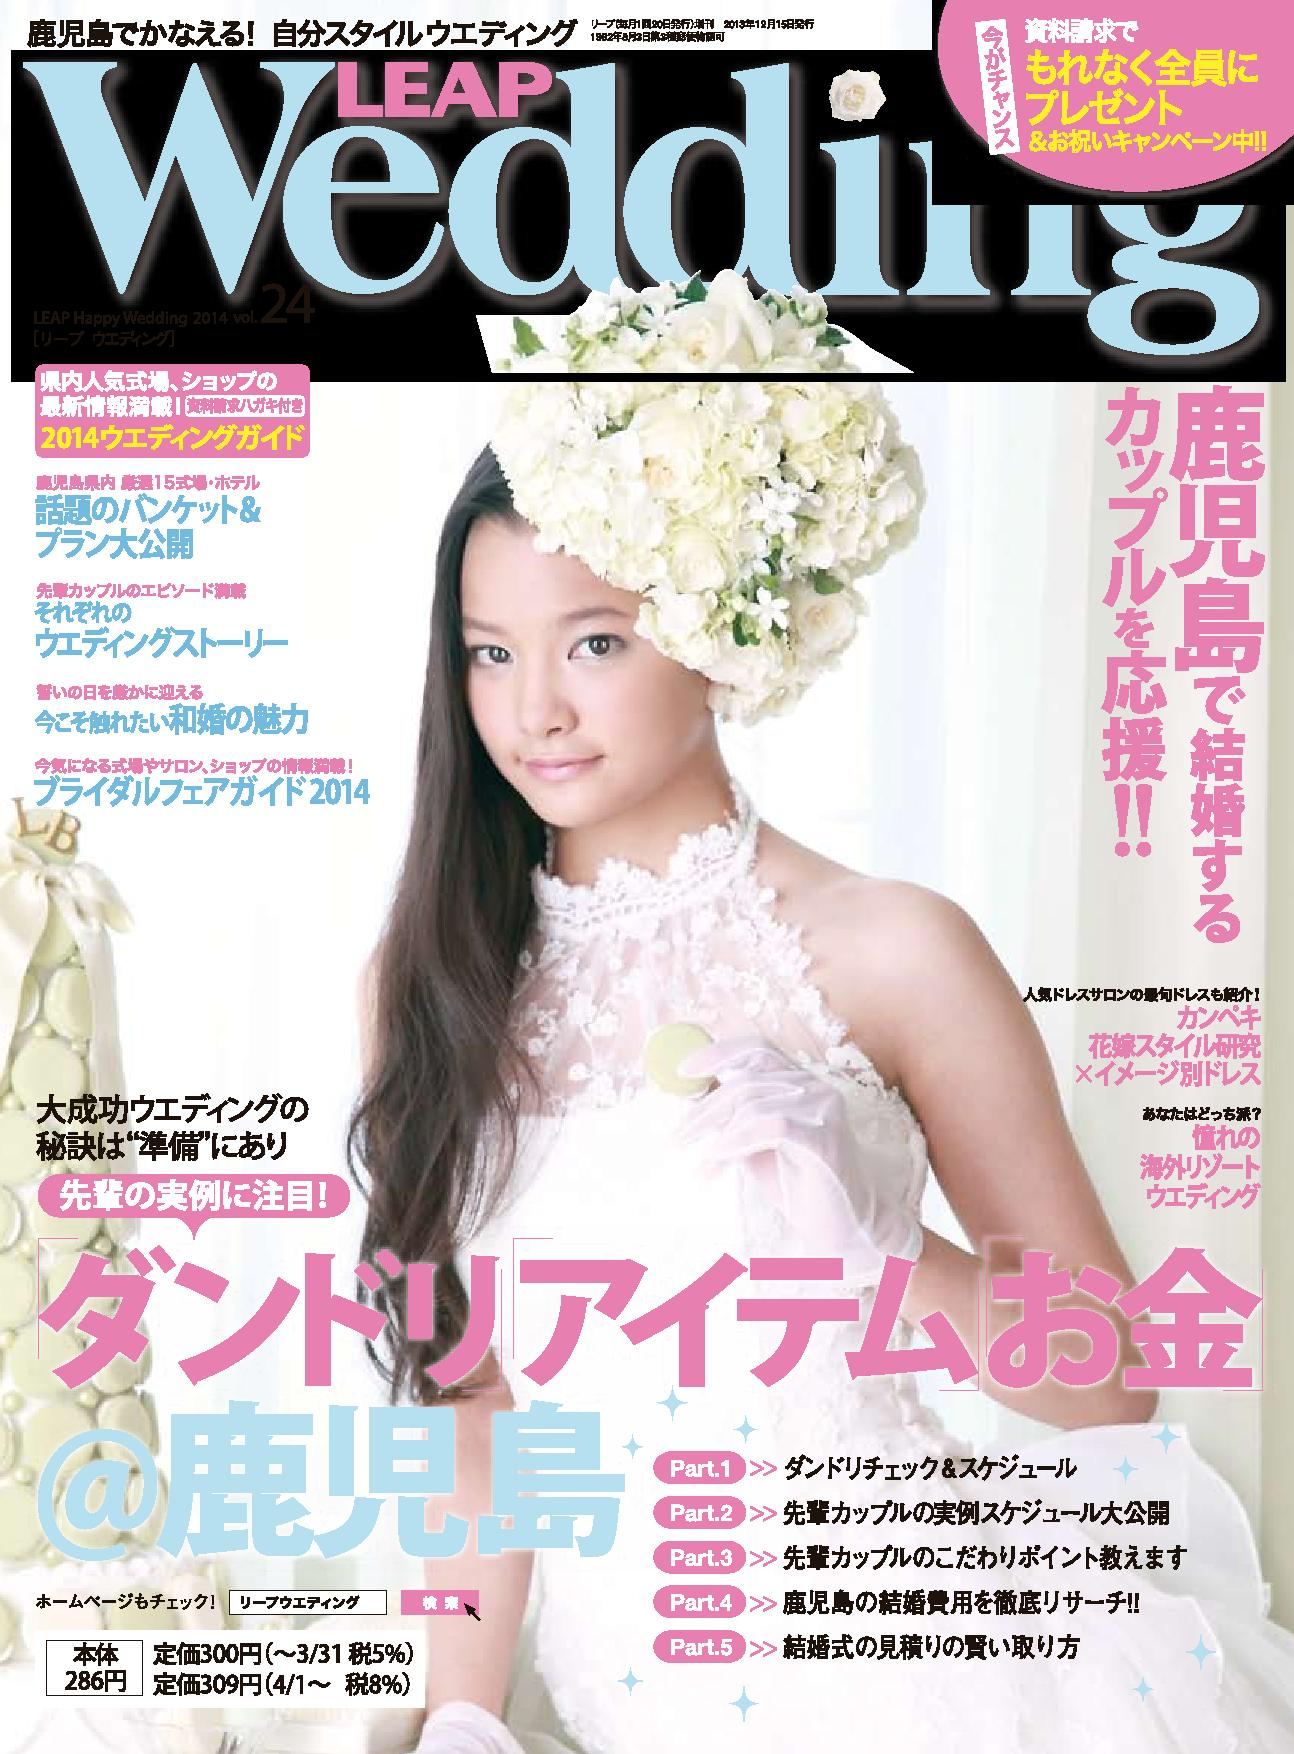 LEAP Wedding vol.24 表紙0001